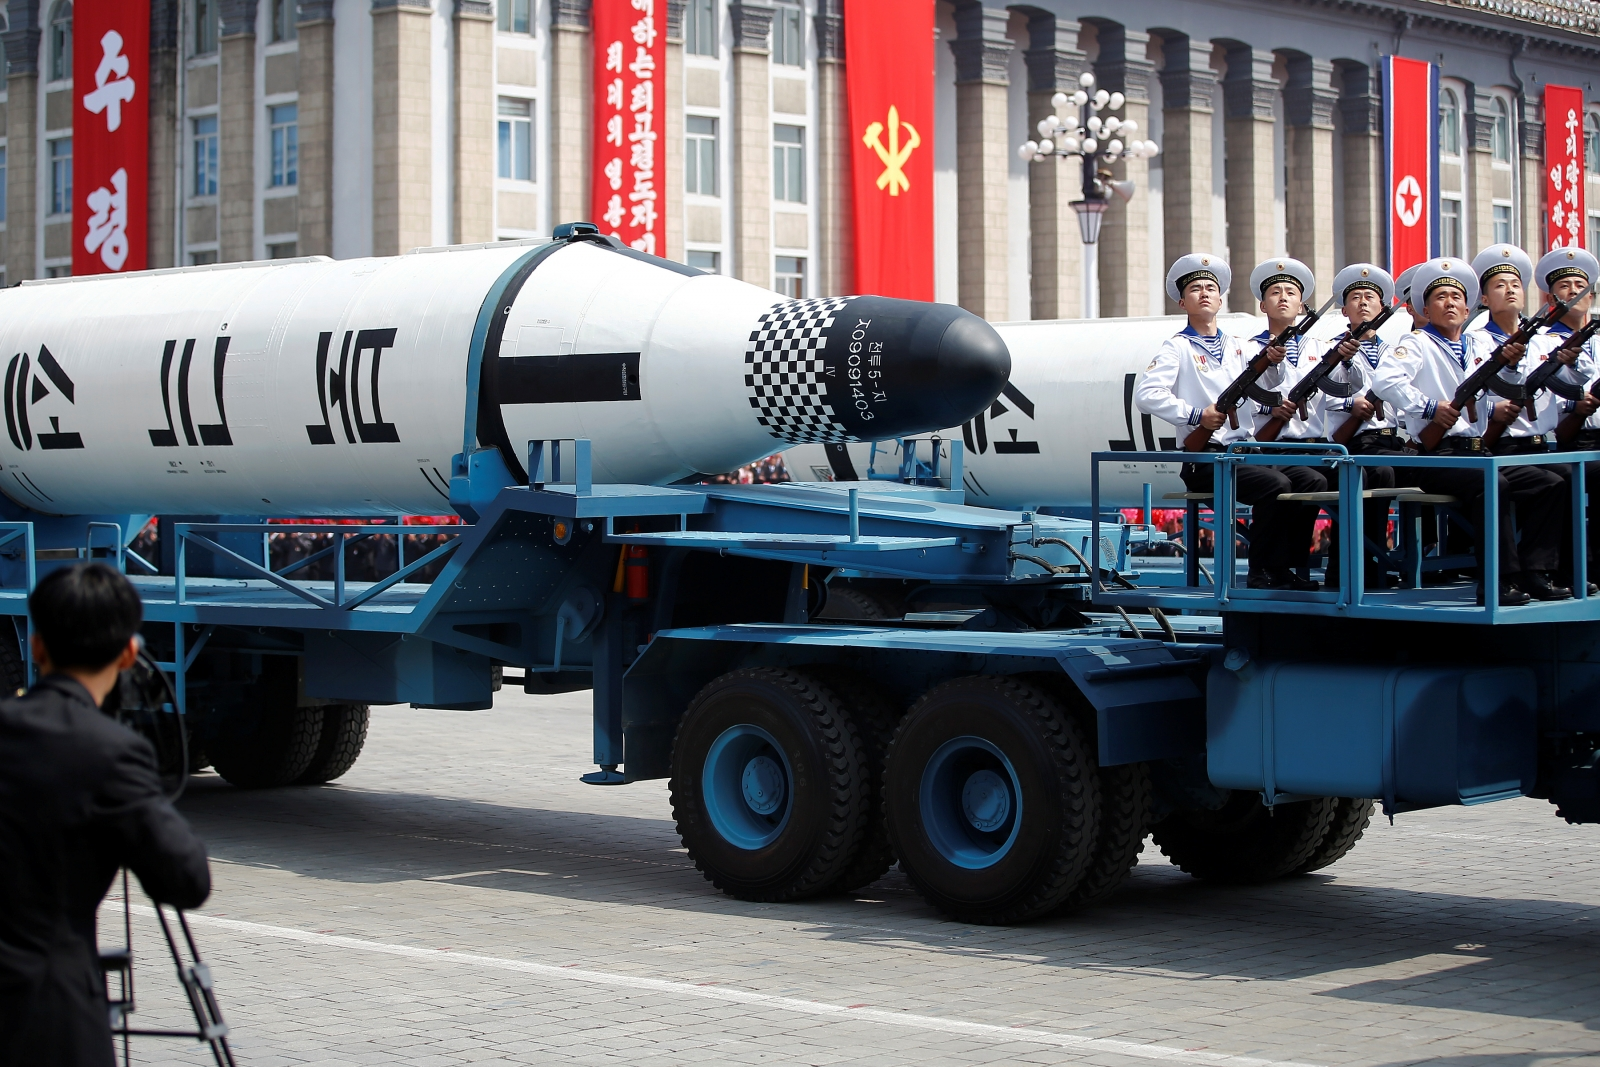 north korea founder's day ICBM